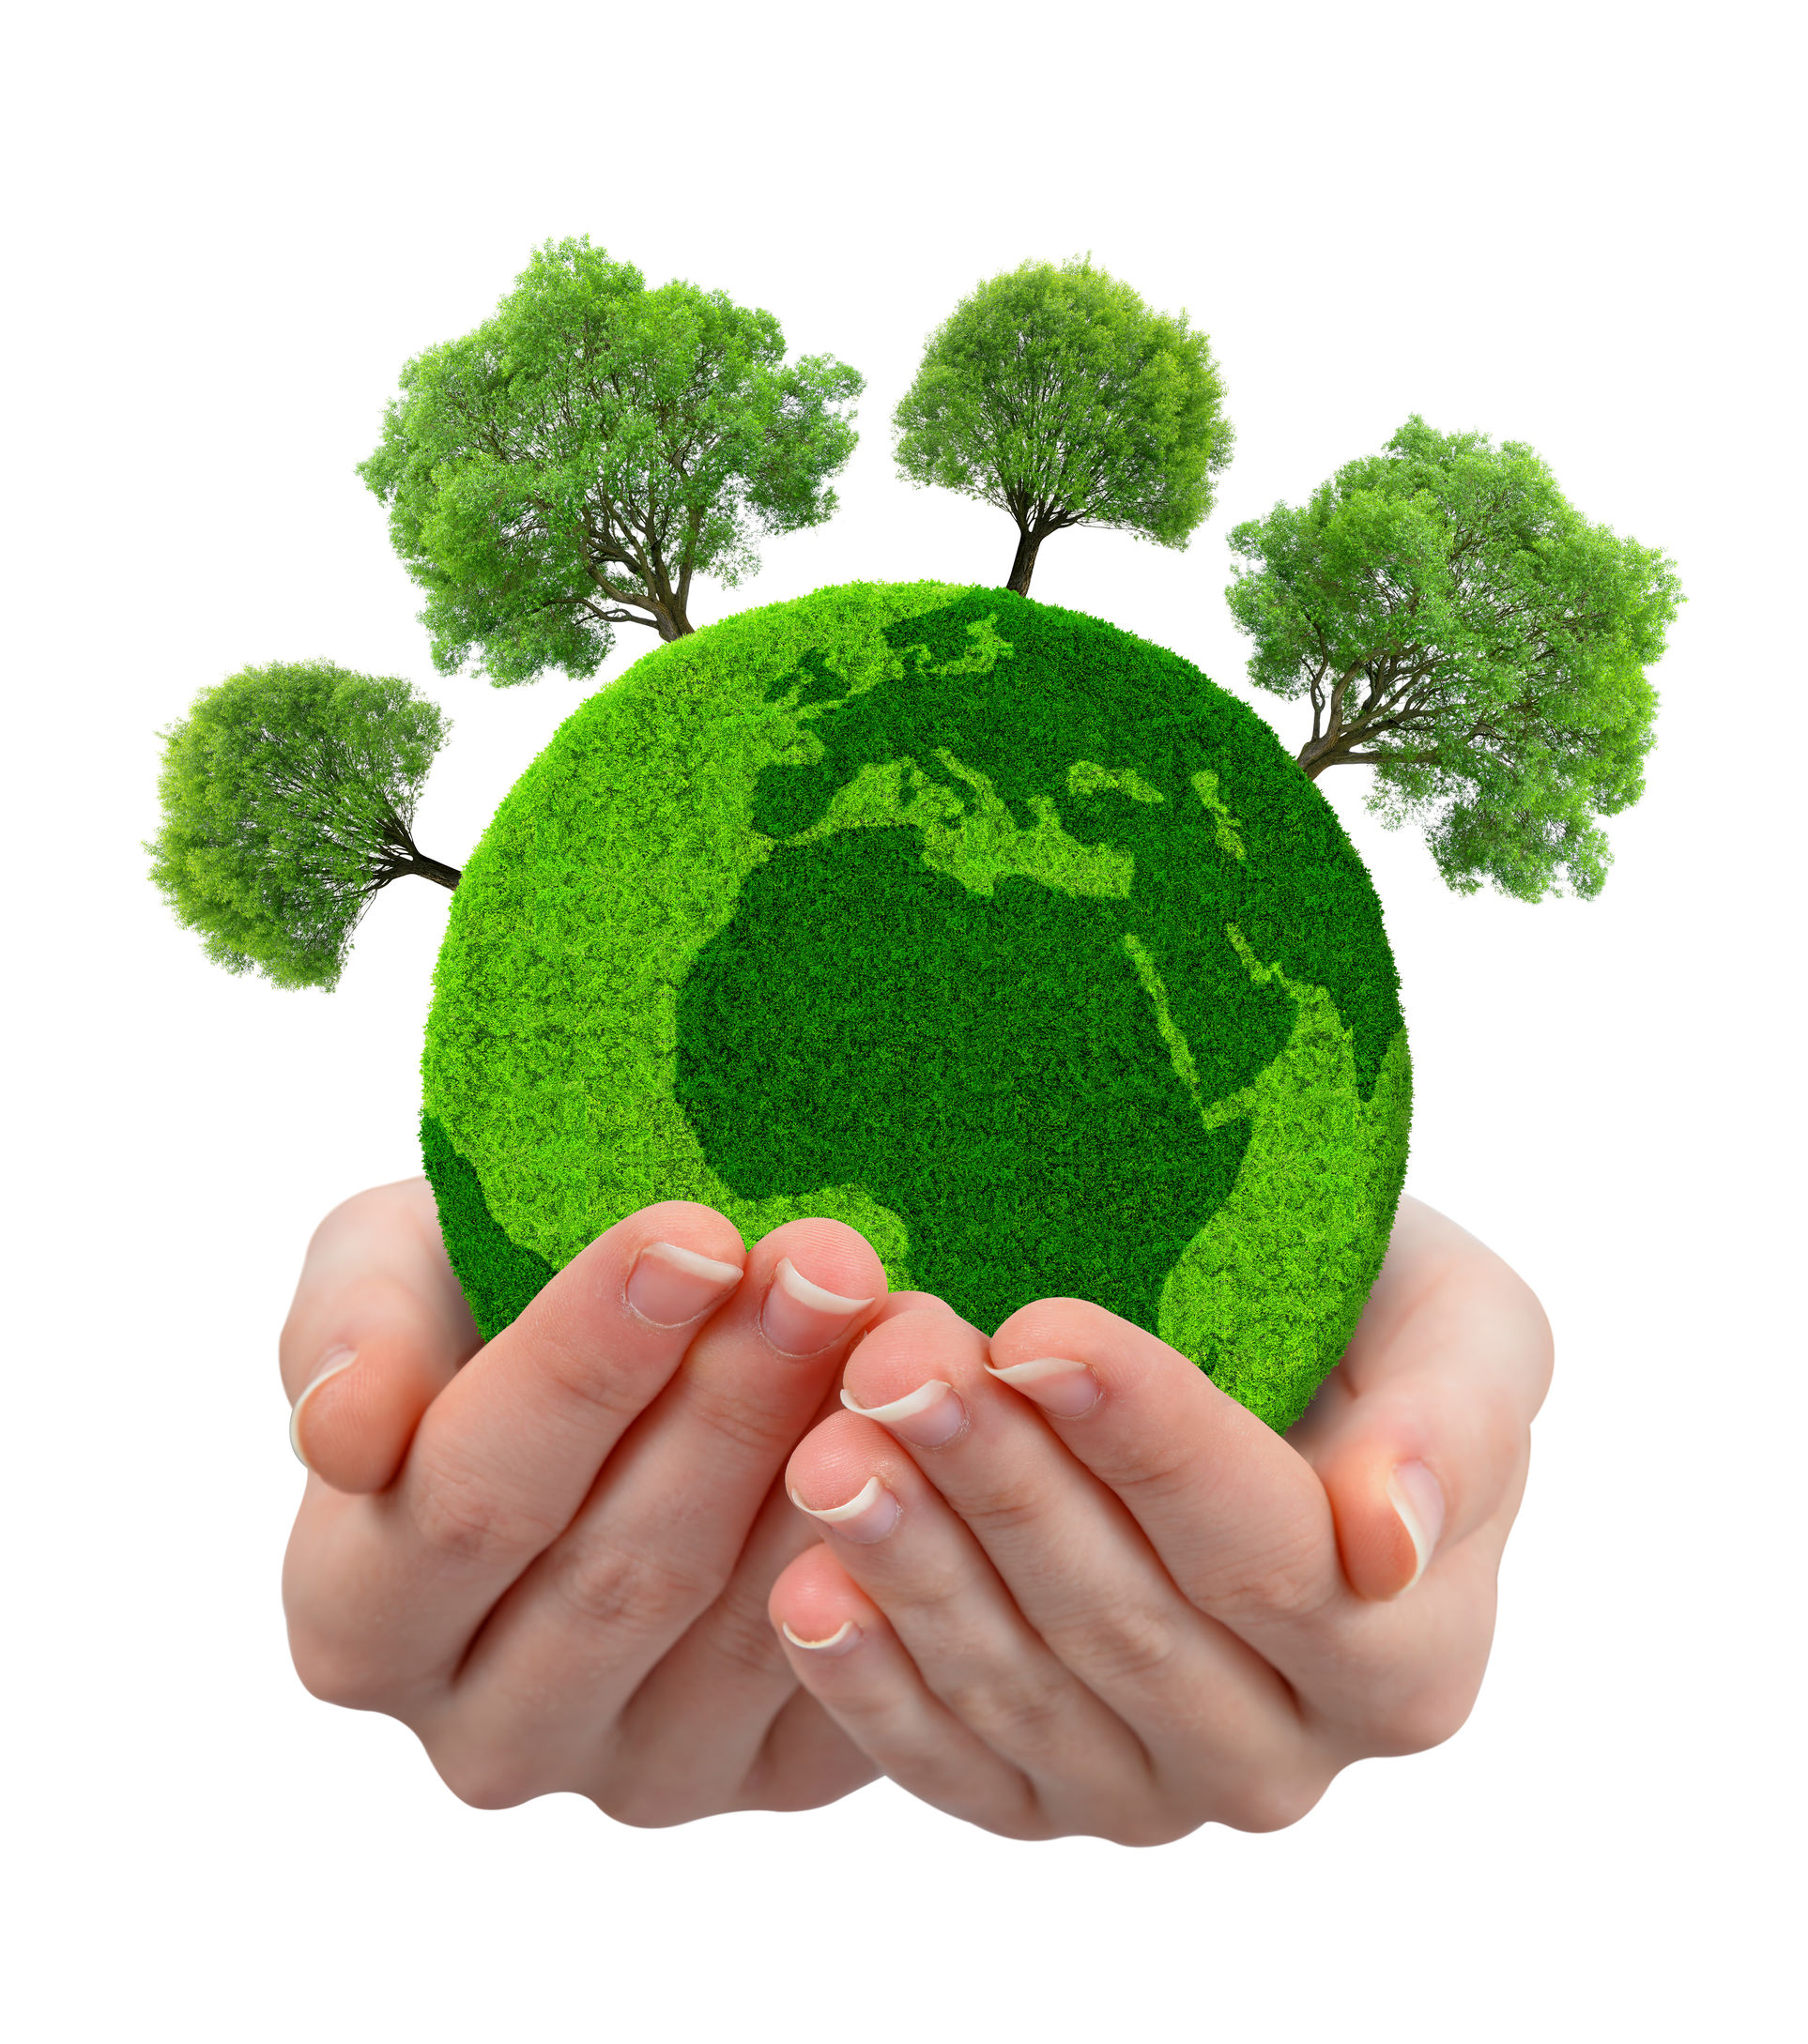 43883304 - green planet with trees in hands isolated on white background